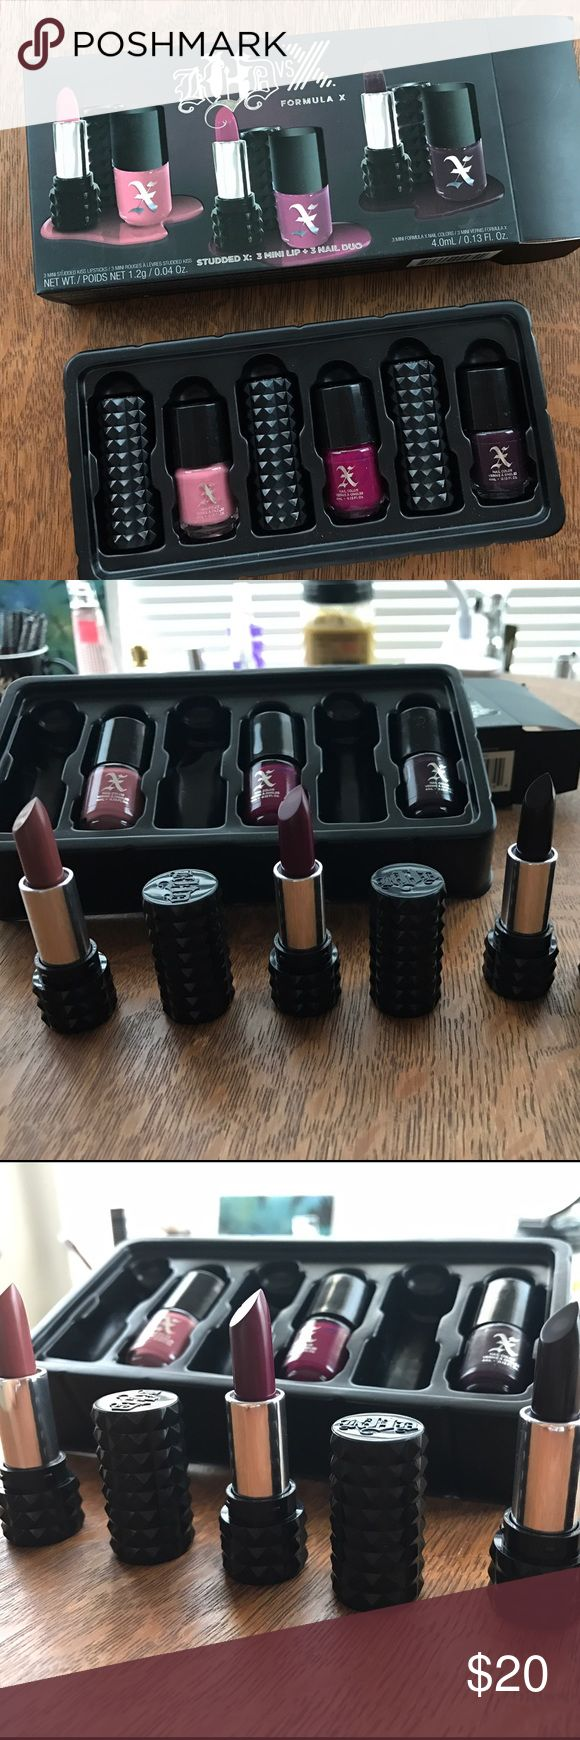 Kat Von D VS FORMULA X Studded X New  Kat Von D VS FORMULA X  Studded X: 3 Mini Lip + 3 Nail Polish Duo  KVD vs X: Round 1 / LOVECRAFT / mauve pink nude, rose clair KVD vs X: Round 2 / BAUHAU5 / deep raspberry, framboise intense KVD vs X: Round 3 / HOMEGIRL / black berry, mure sauvage  SET CONTAINS: 3 MINI STUDDED KISS LIPSTICKS / NET WT./ POIDS I NET 1.2g / 0.04Oz 3 MINI FORMULA X NAIL CLORS / 4.0mL / 0.13 Fl. Oz Kat Von D Makeup Lipstick